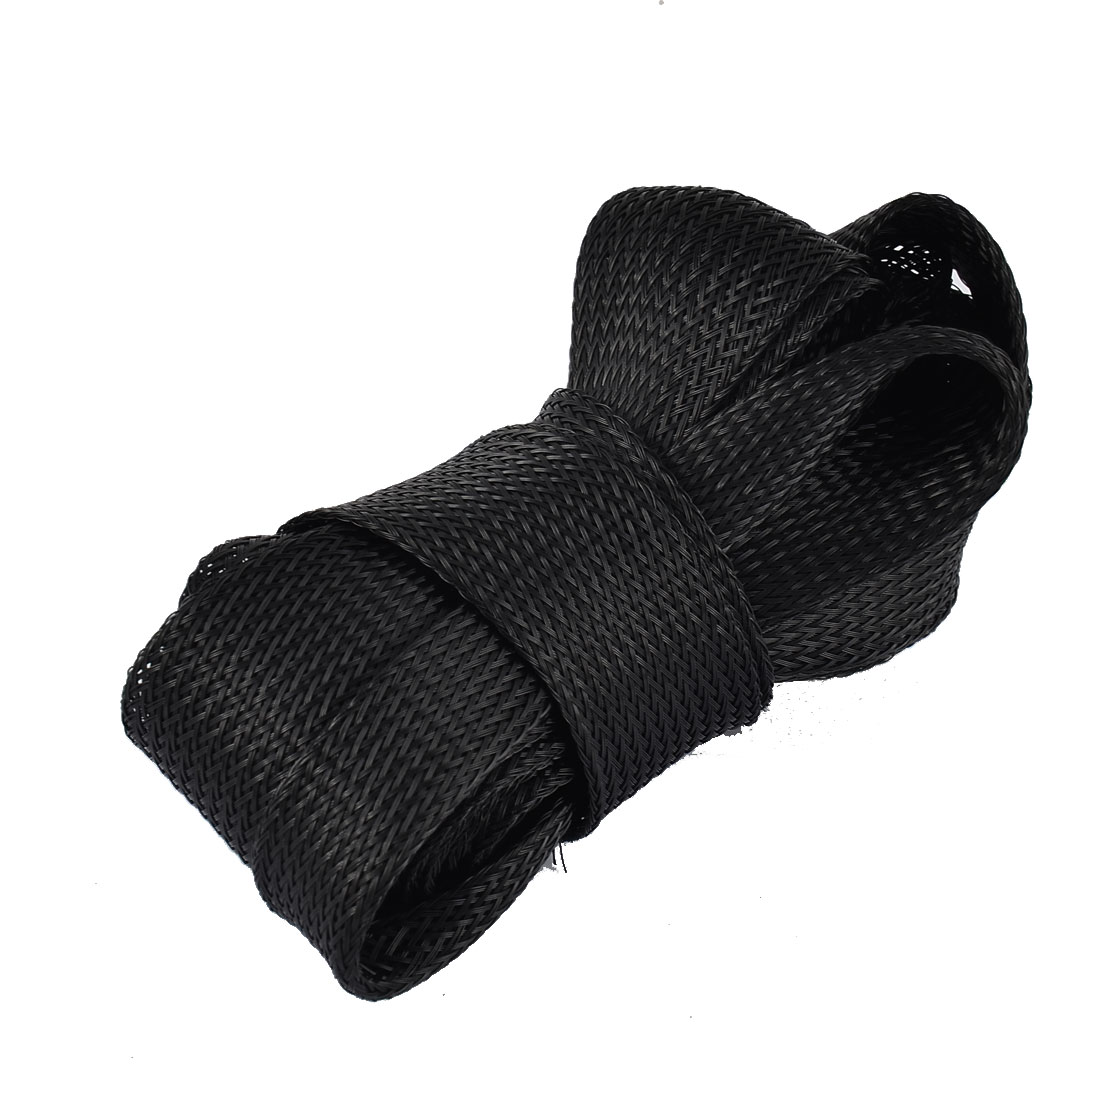 Nylon Braided Expandable Sleeving Cable Sleeve Harness Black 3.8M x 25mm